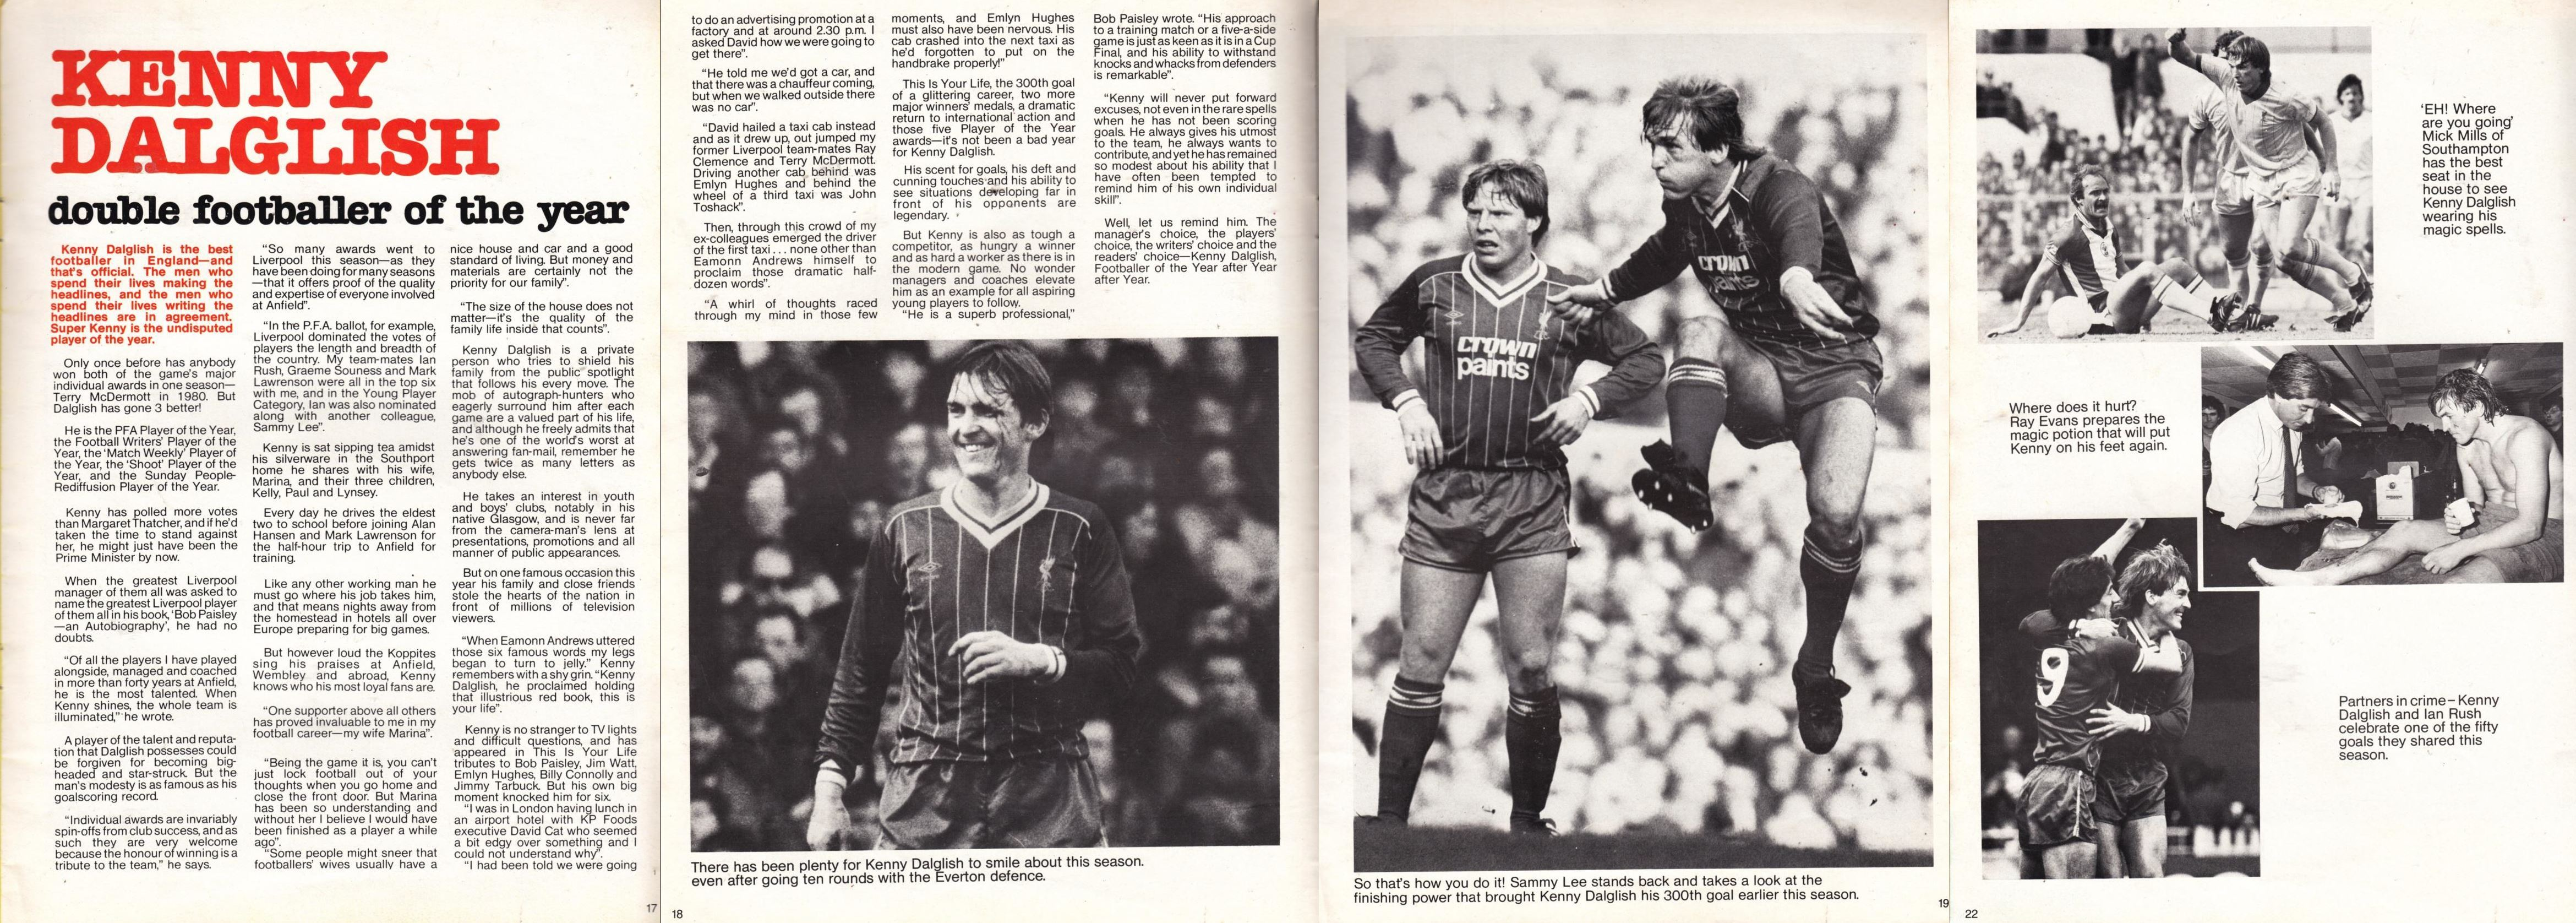 Double footballer of the year 1982/83